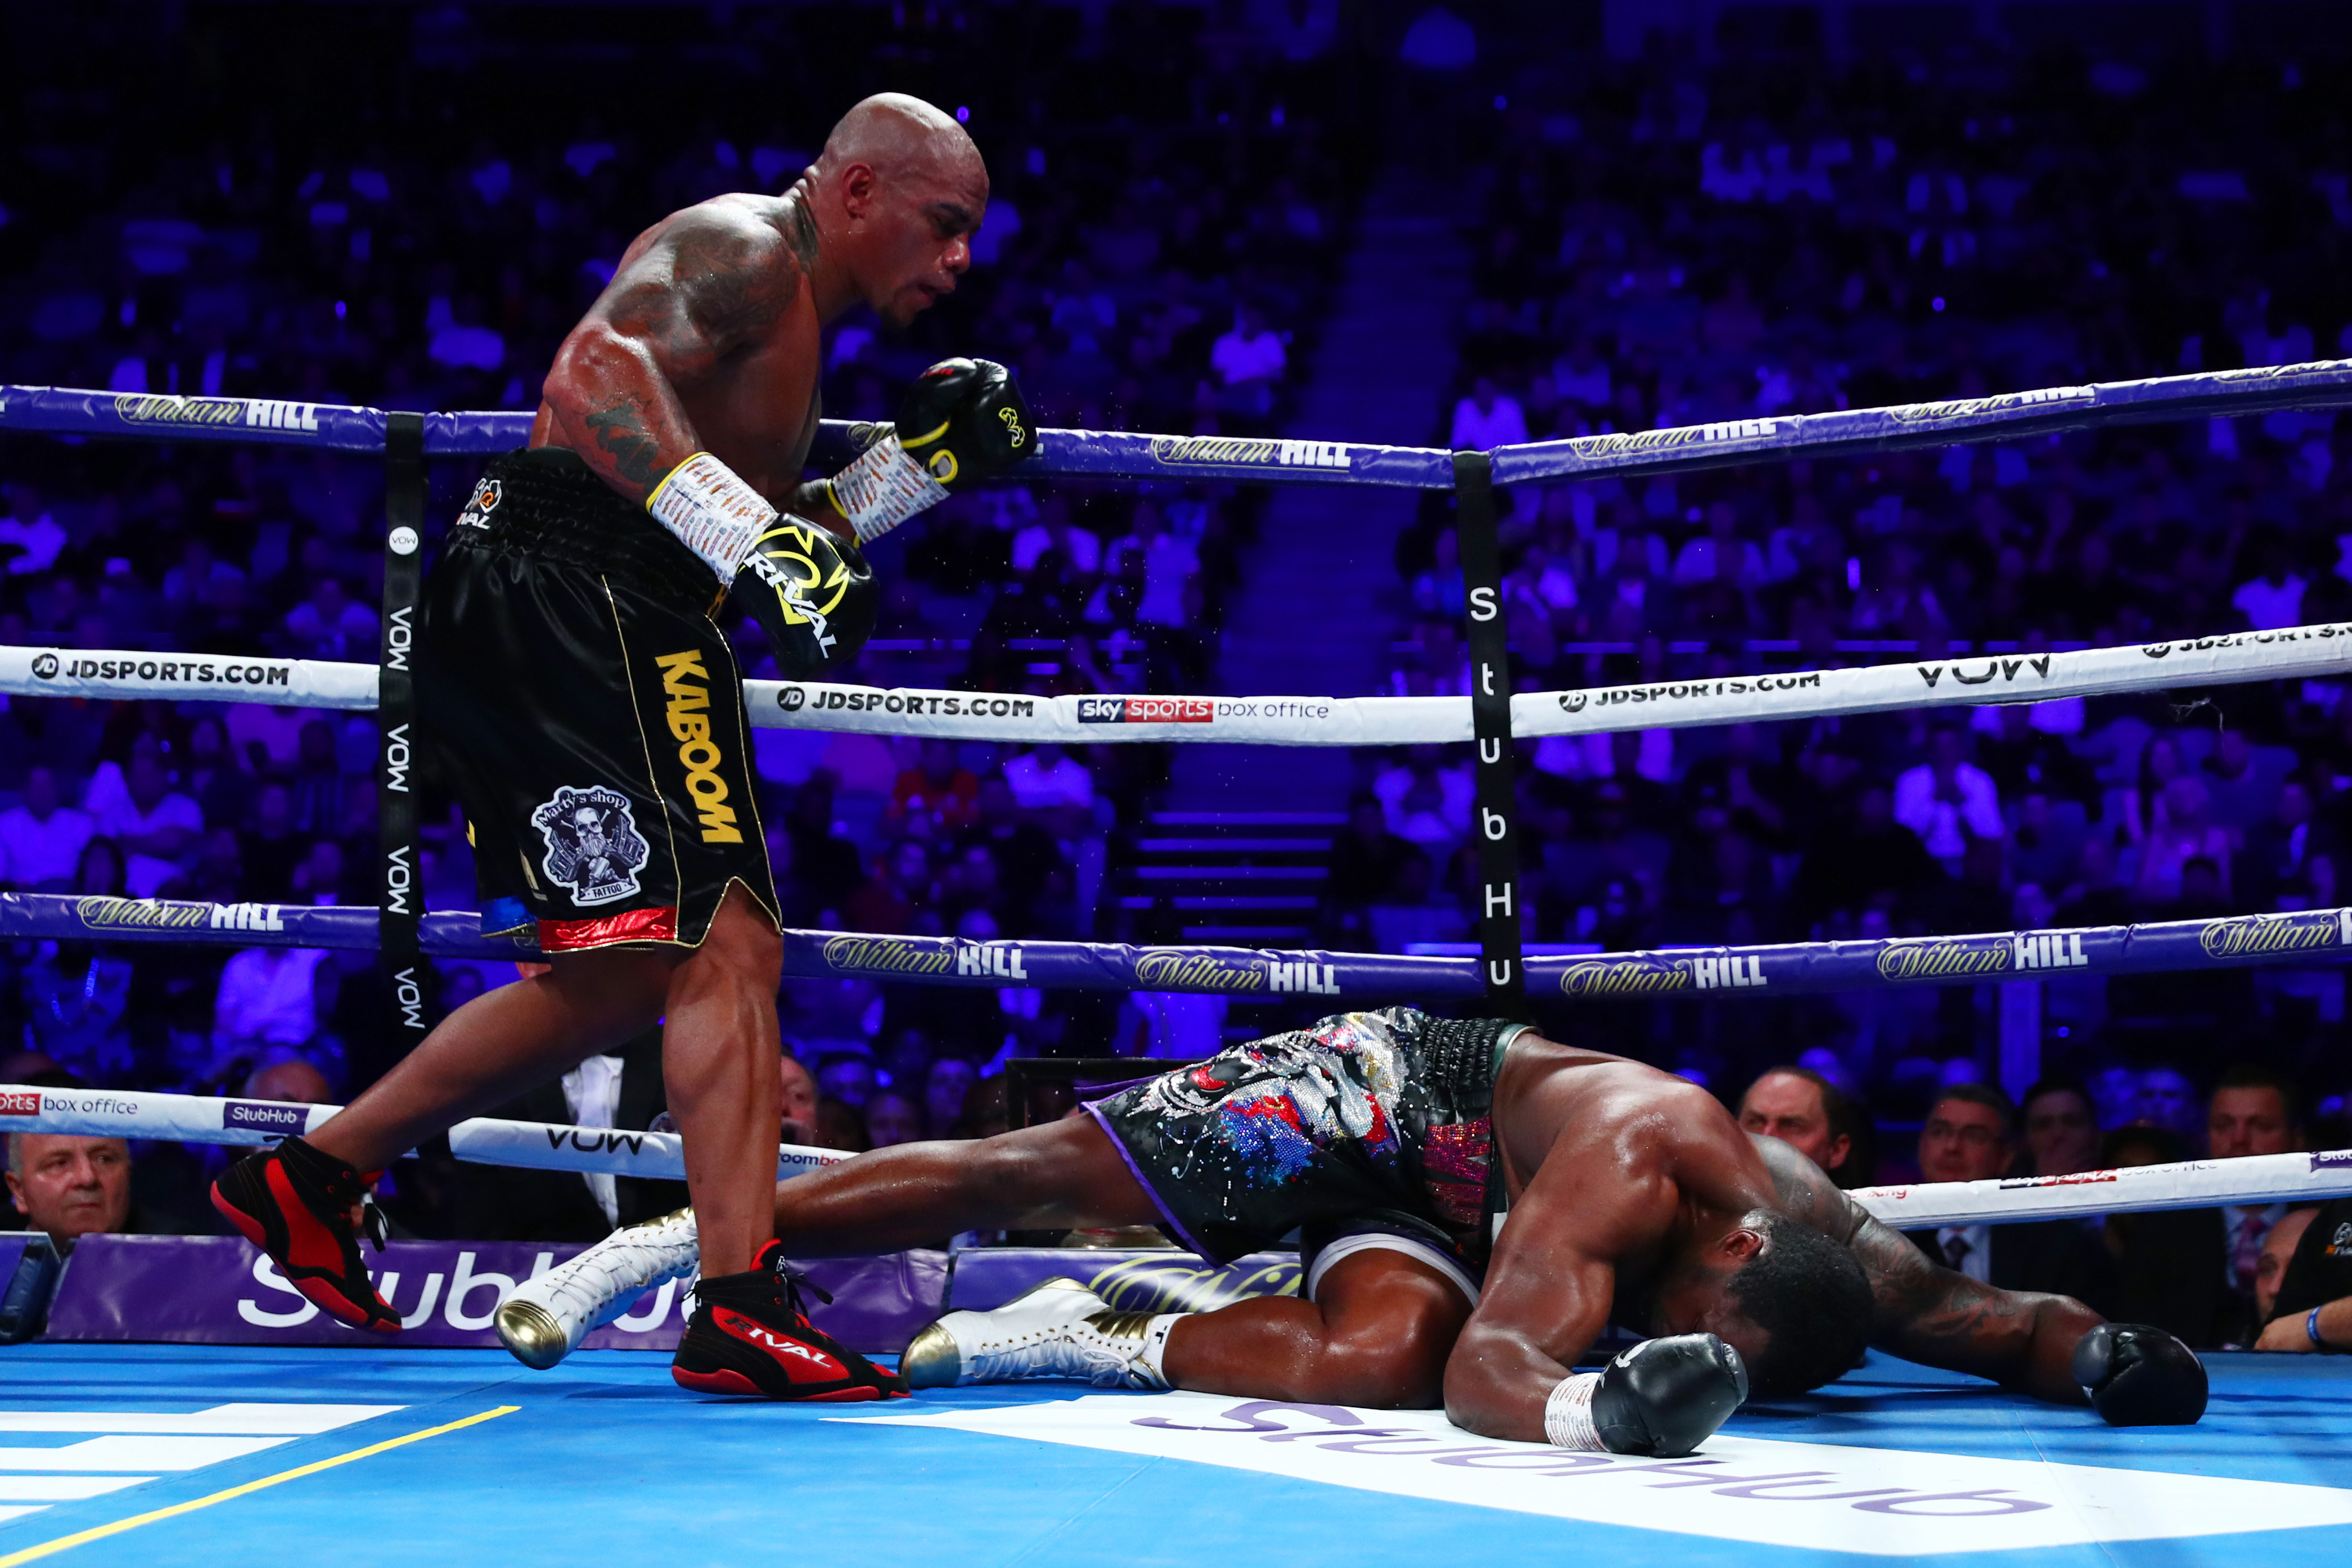 Oscar Rivas floored Dillian Whyte, but lost to him by unanimous decision in July